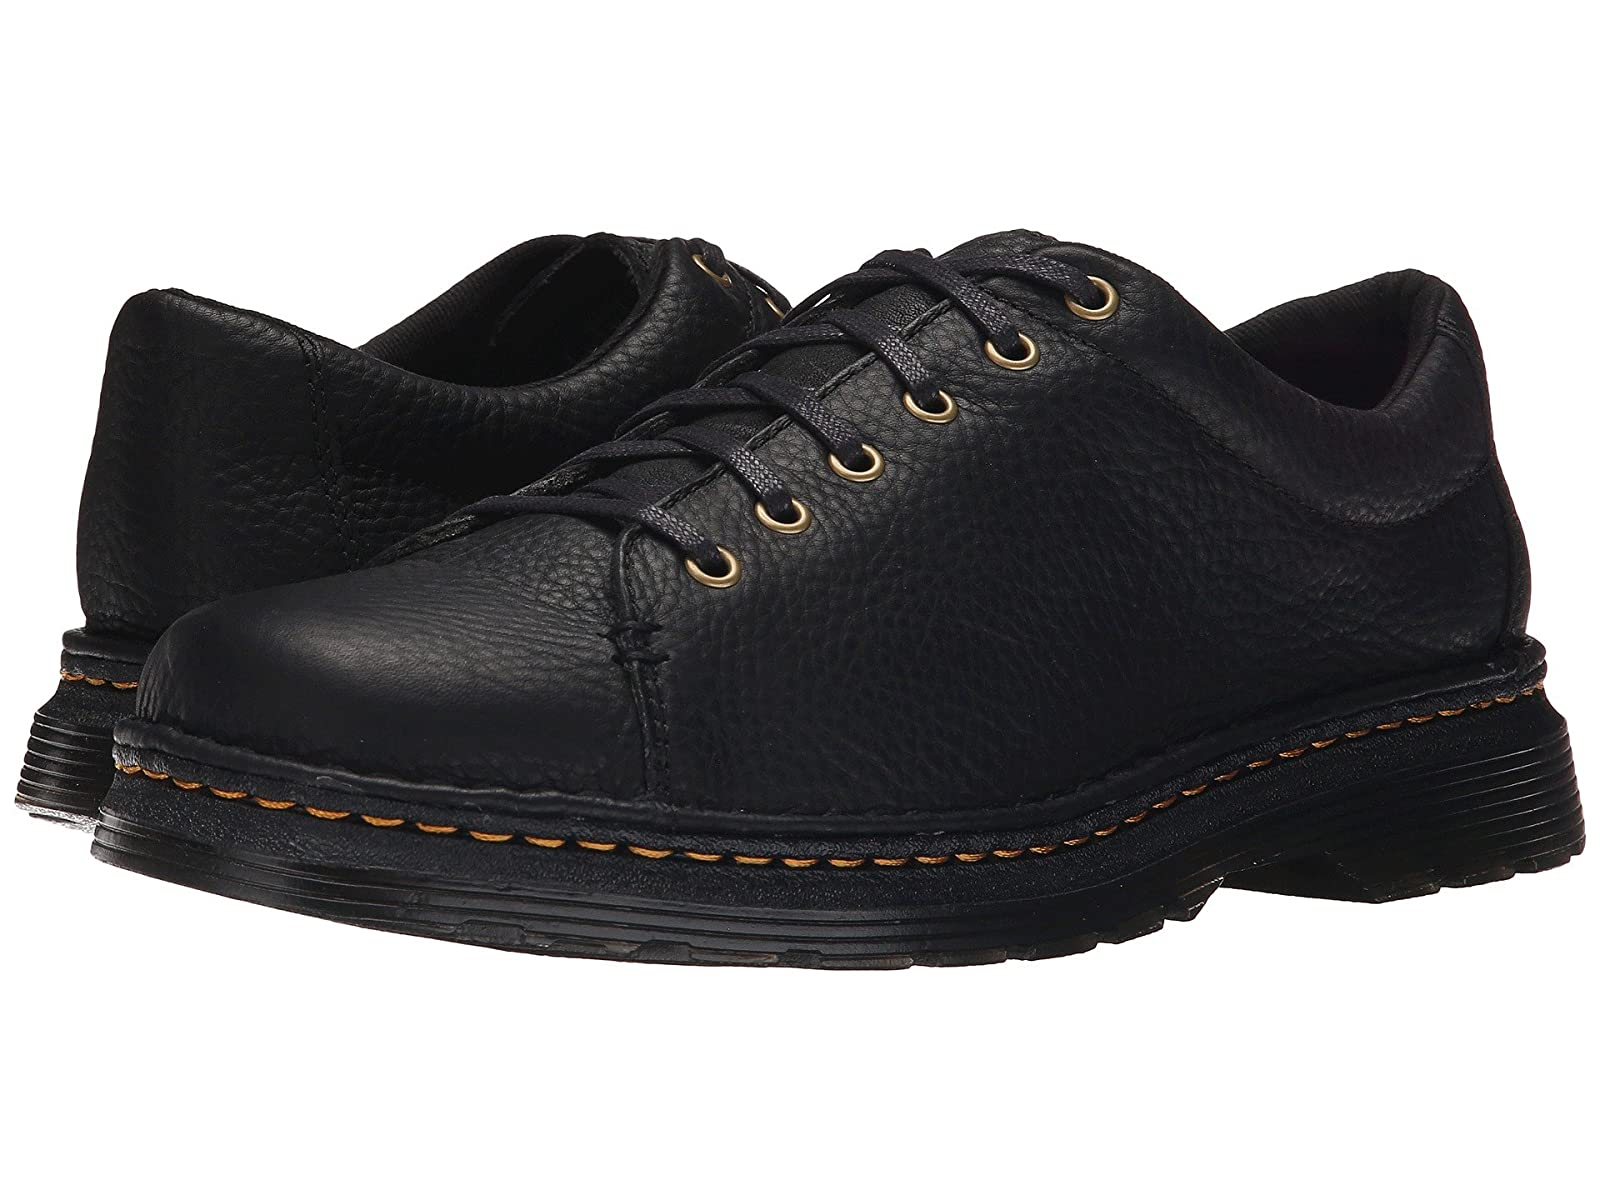 Dr. Martens Healy 6-Tie LTT ShoeCheap and distinctive eye-catching shoes